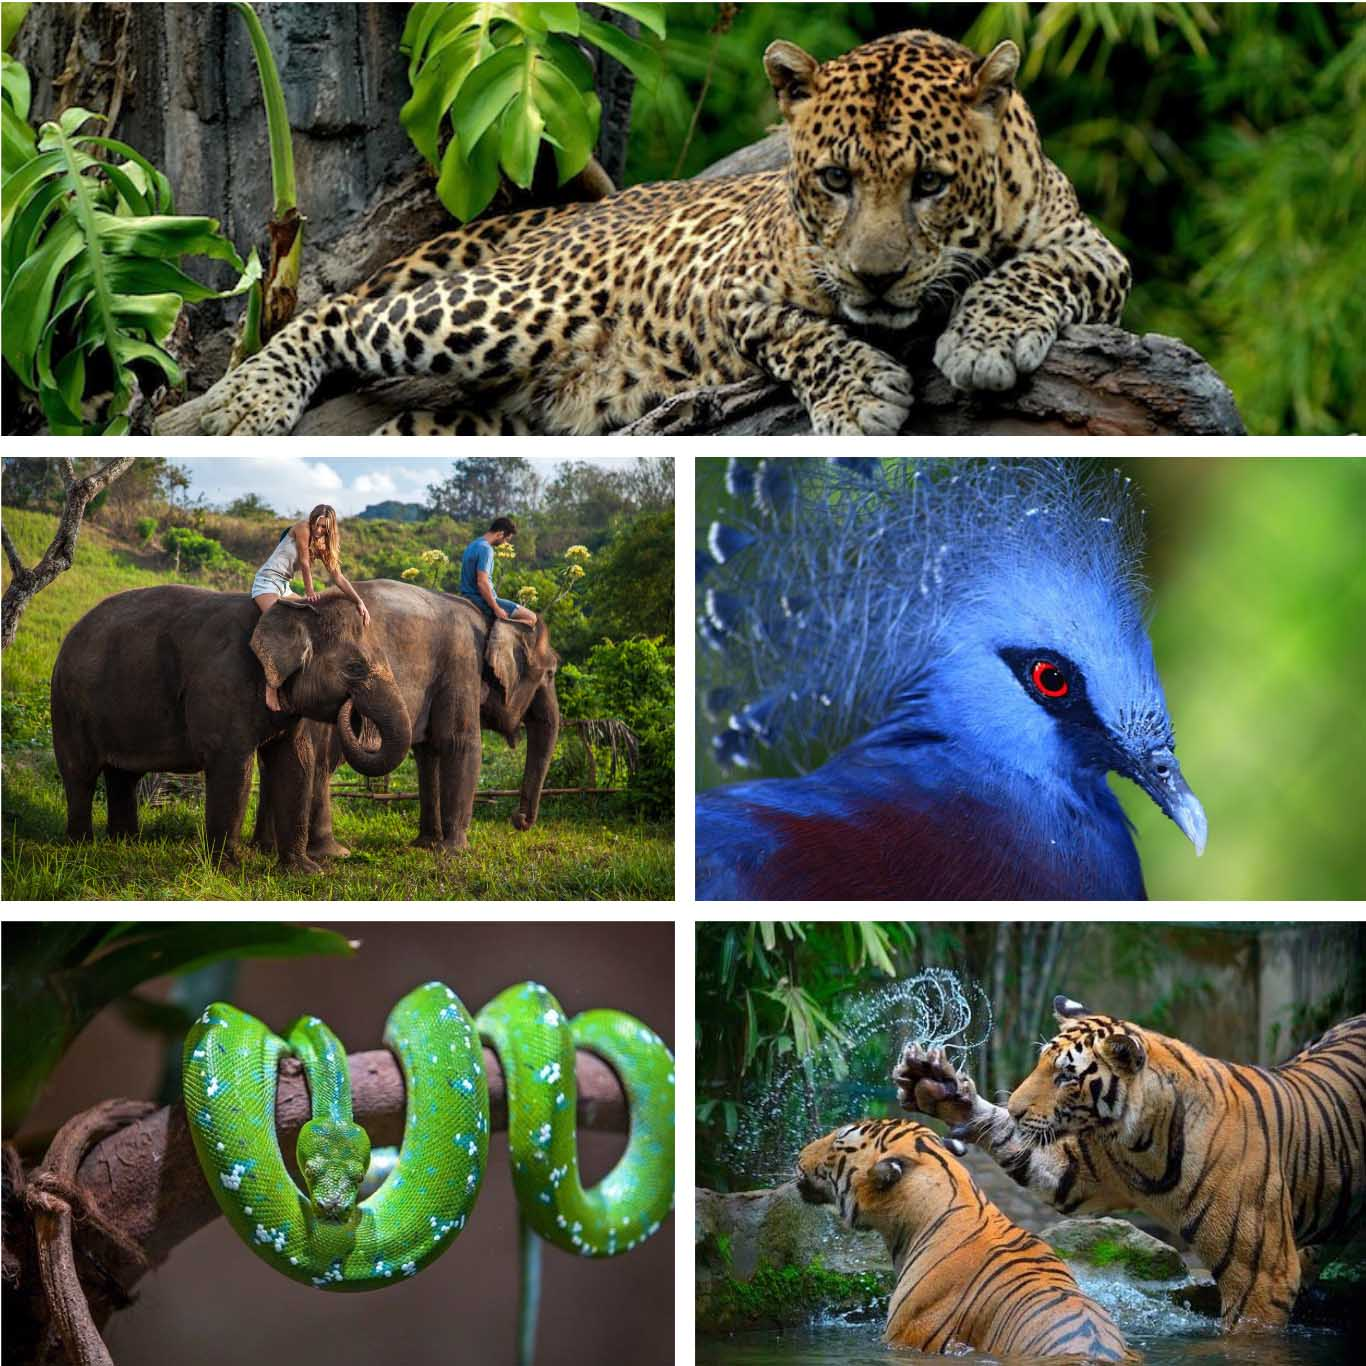 Bali Zoo - Bali's Wild Side- Animal Attractions